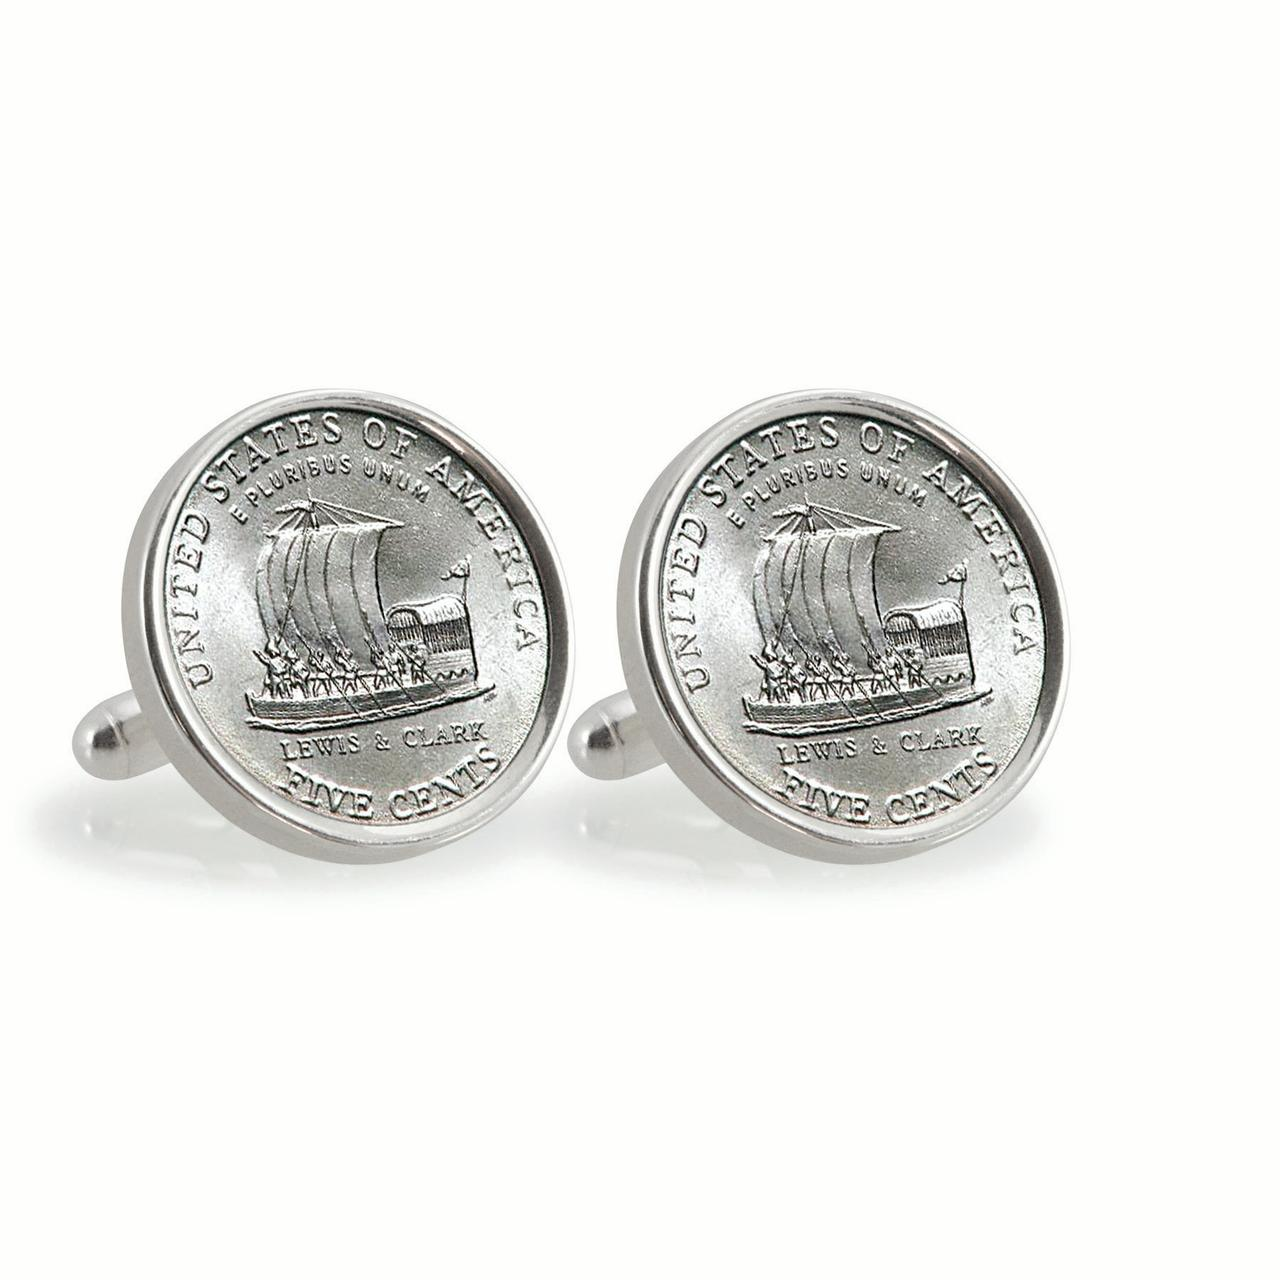 UPM Global LLC 12784 2004 Keelboat Sterling Silver Cuff Links